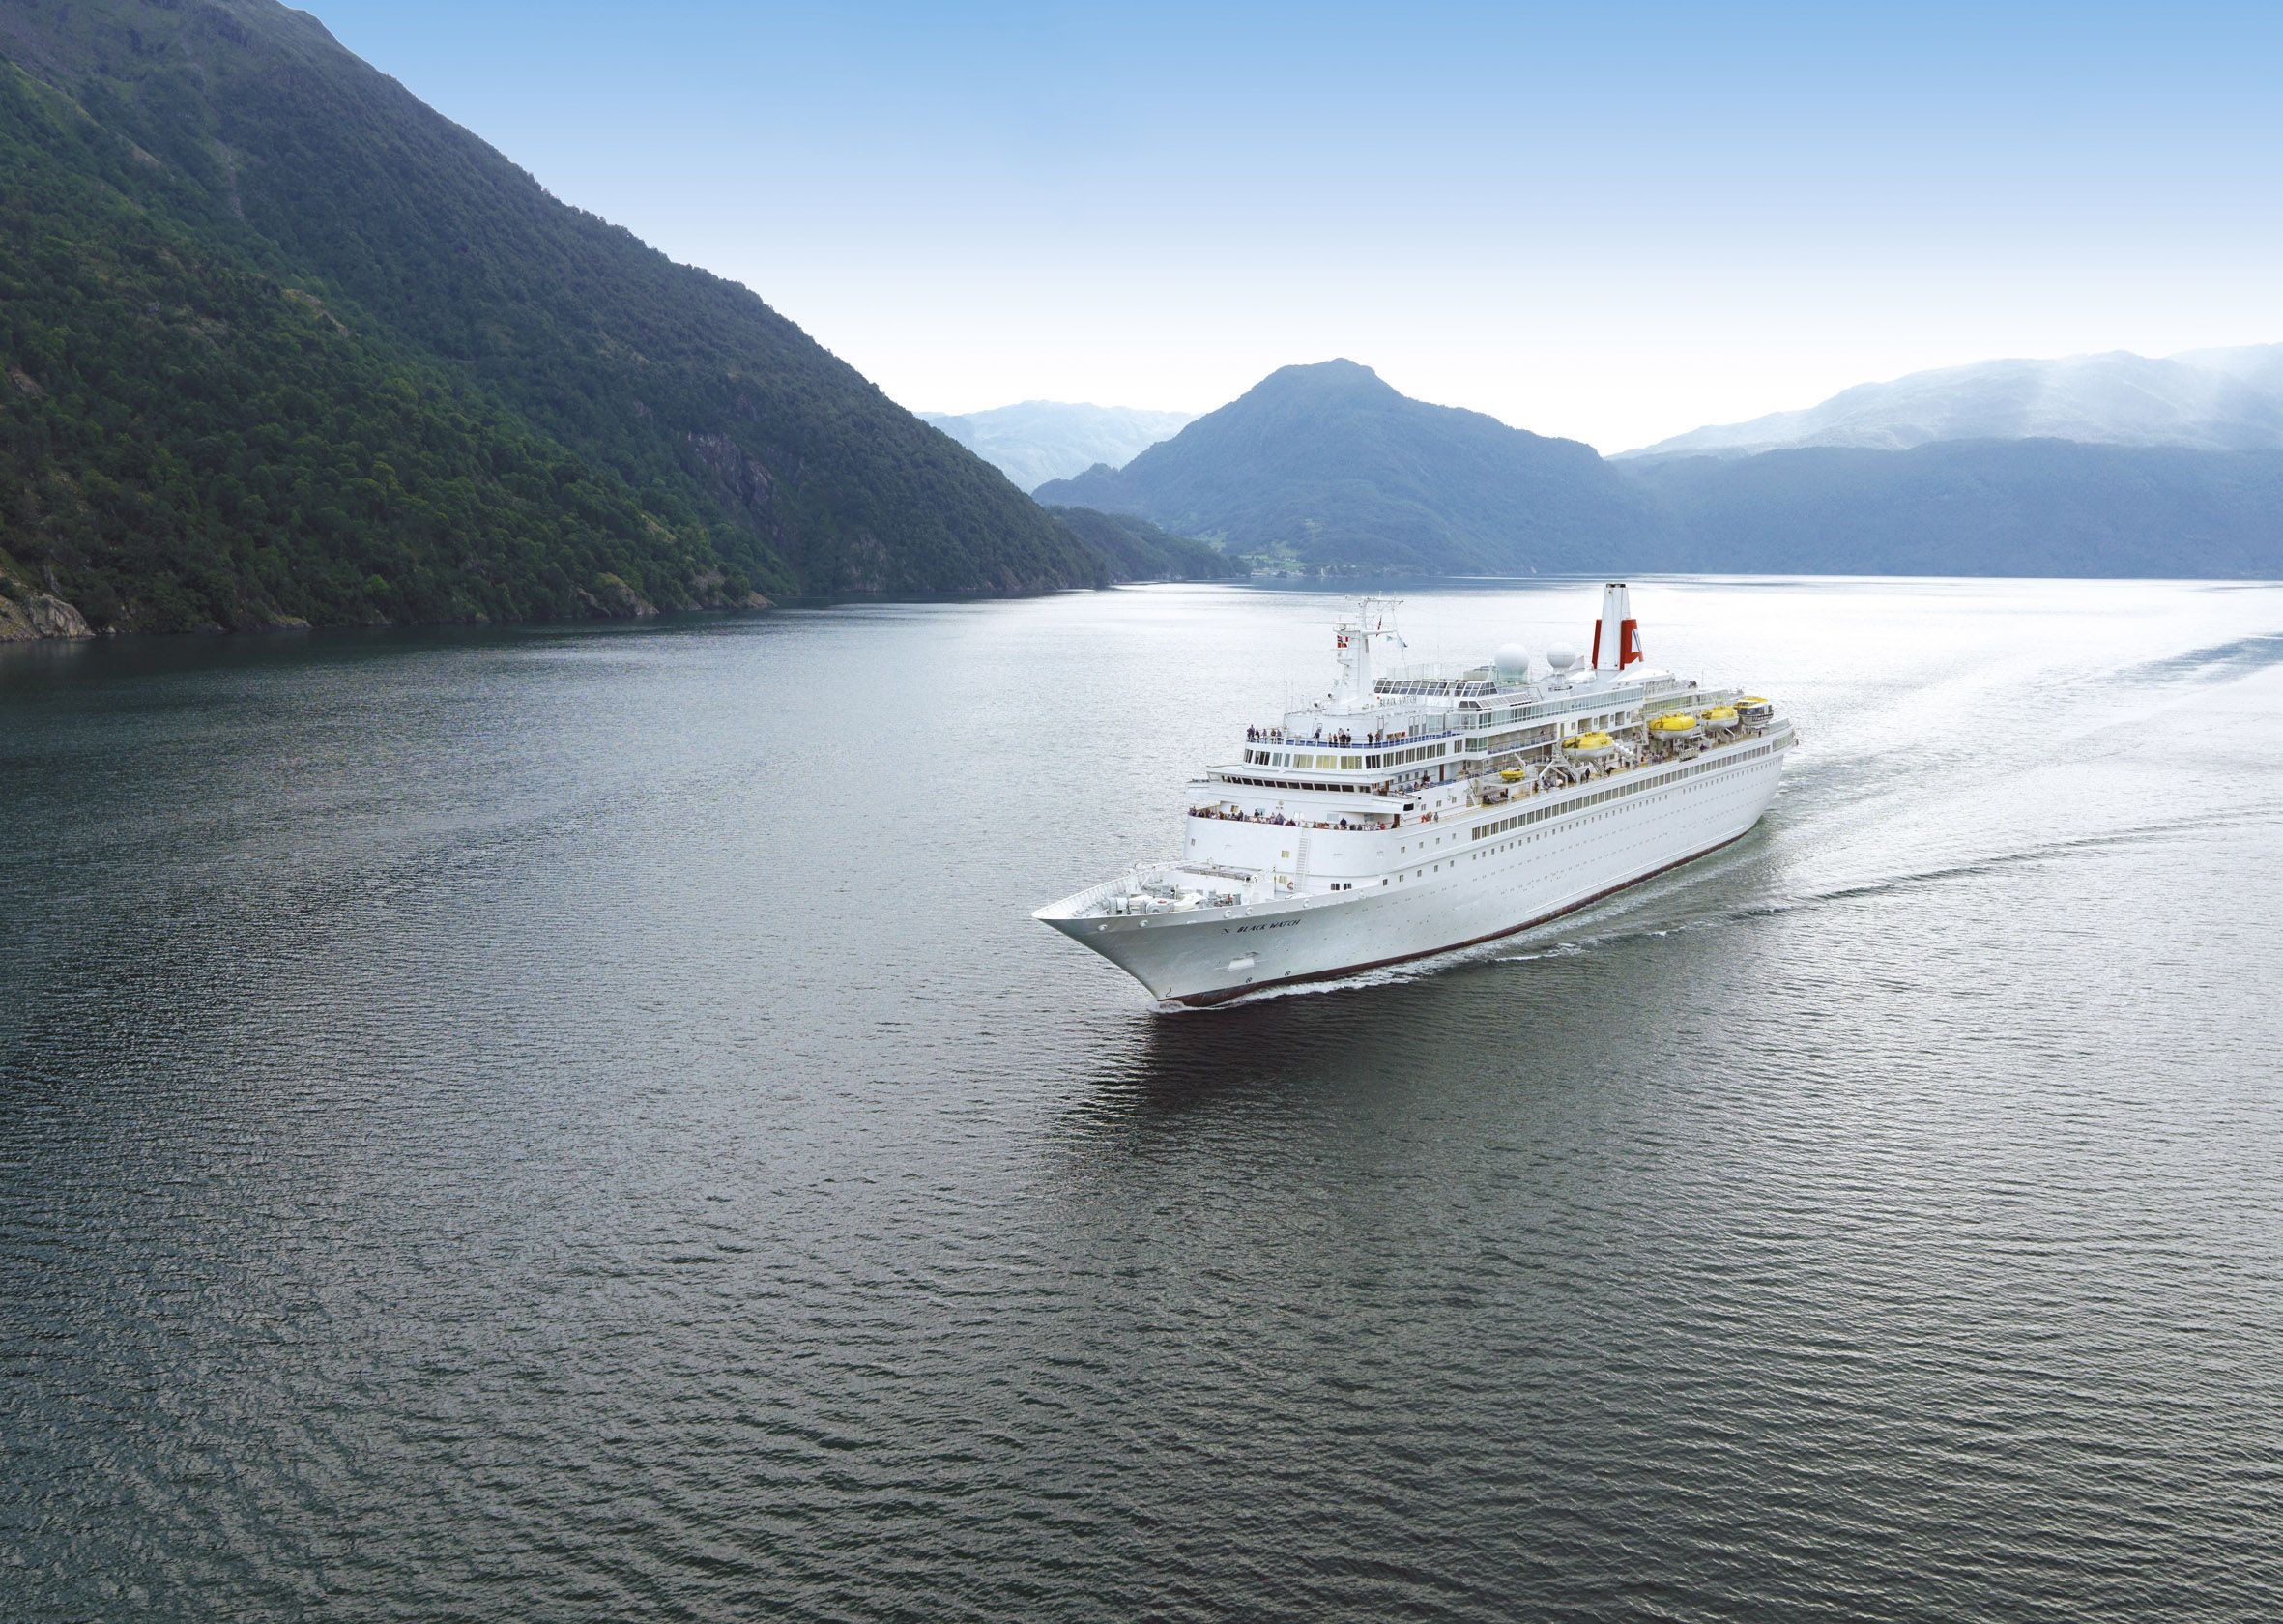 Black Watch cruise ship, cruising the Norwegian Fjords - Fred. Olsen Cruise Lines